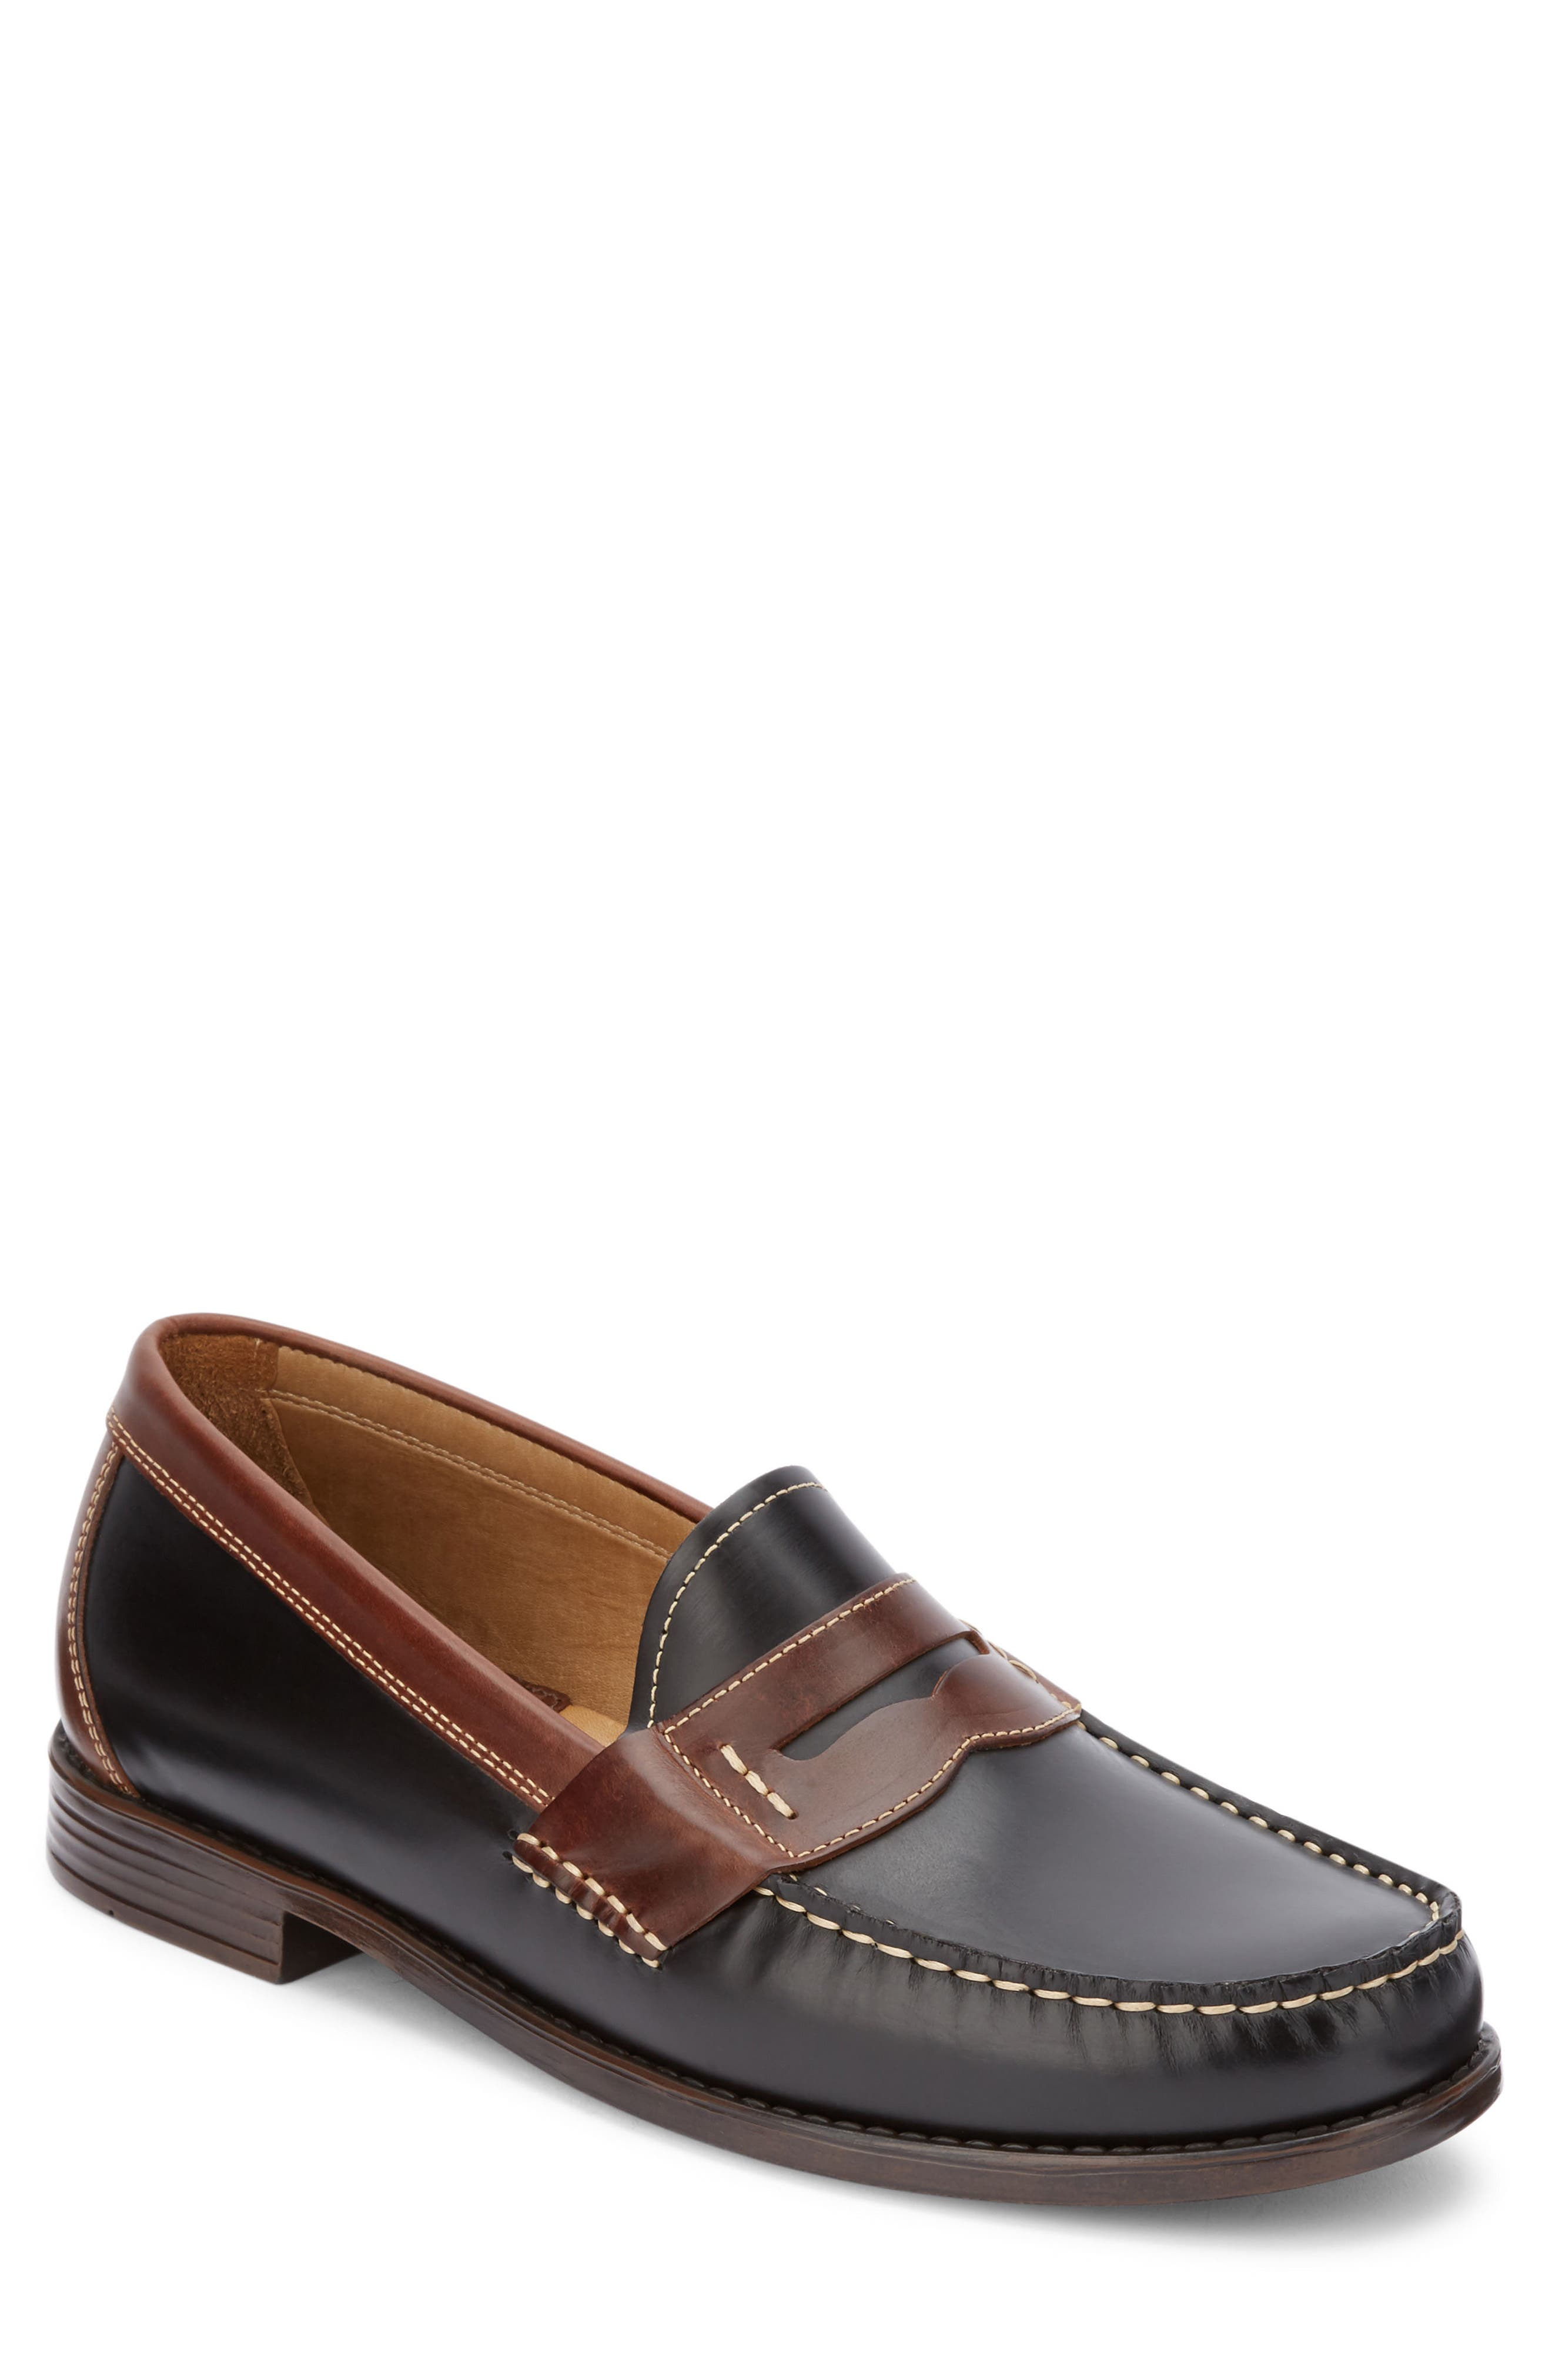 Wagner Penny Loafer,                             Main thumbnail 1, color,                             Black/ Dark Brown Leather